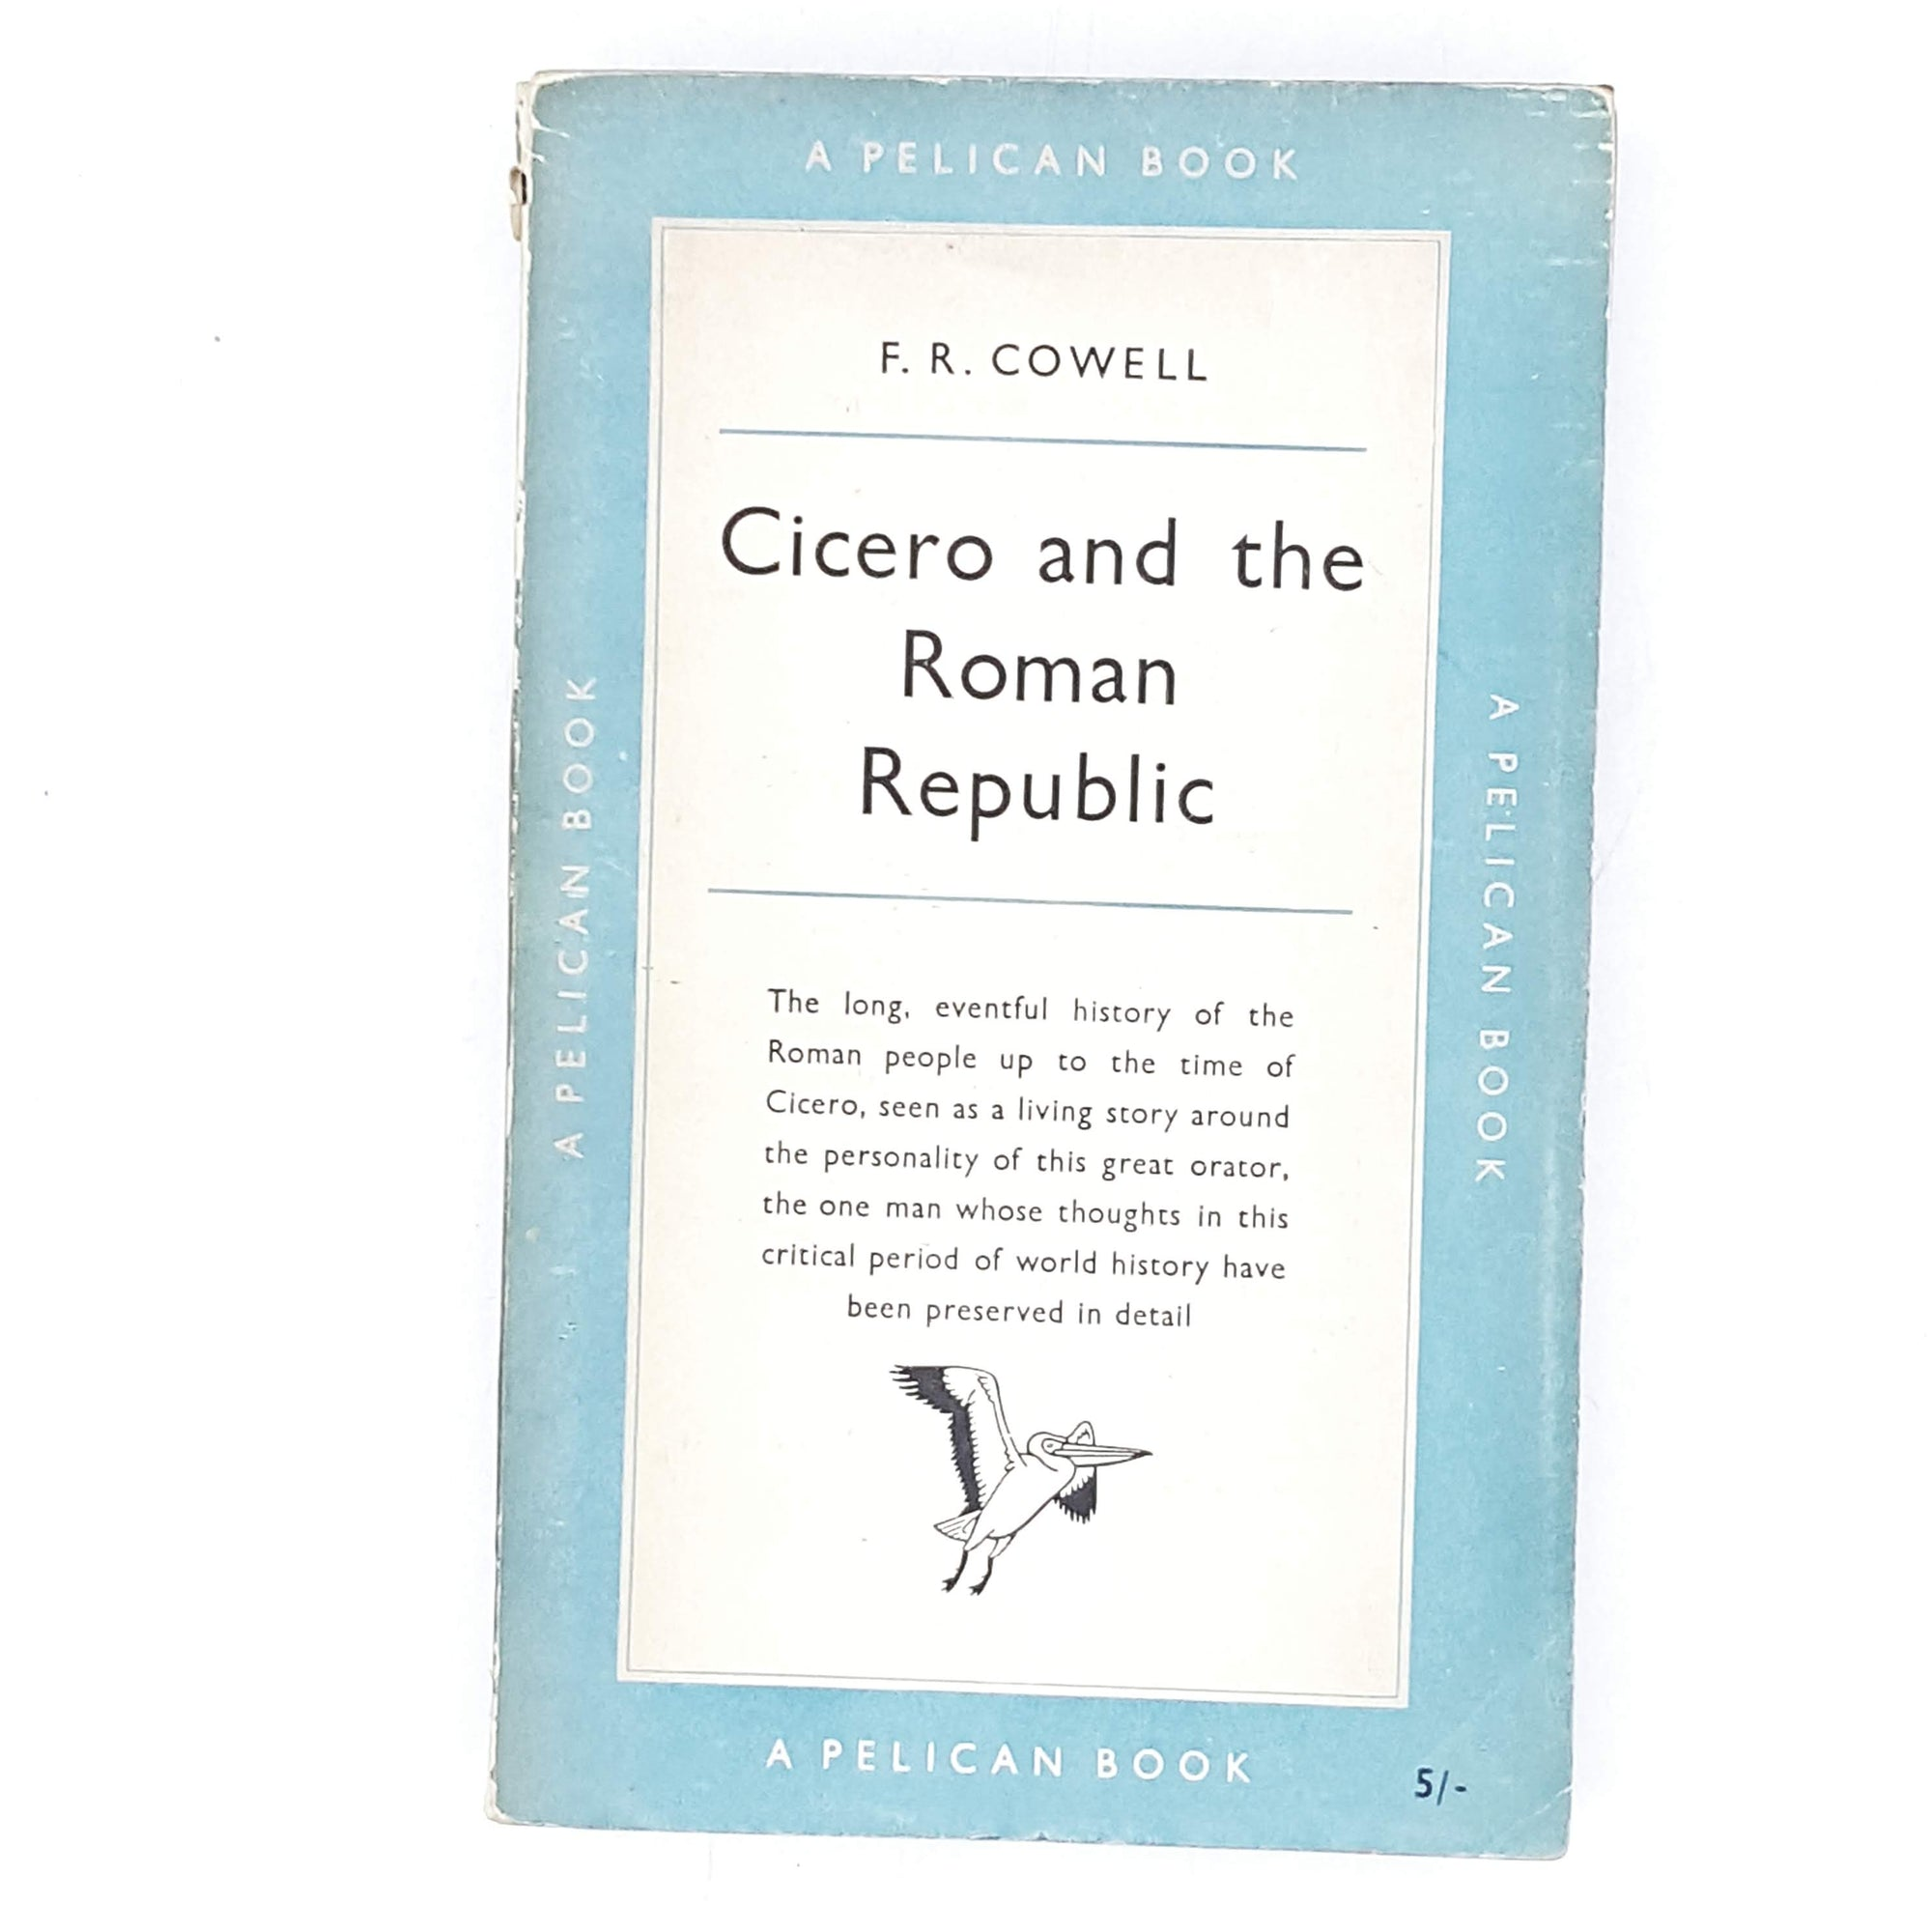 vintage-pelican-cicero-and-the-roman-republic-by-f.-r.-cowell-1956-pale-blue-country-house-library